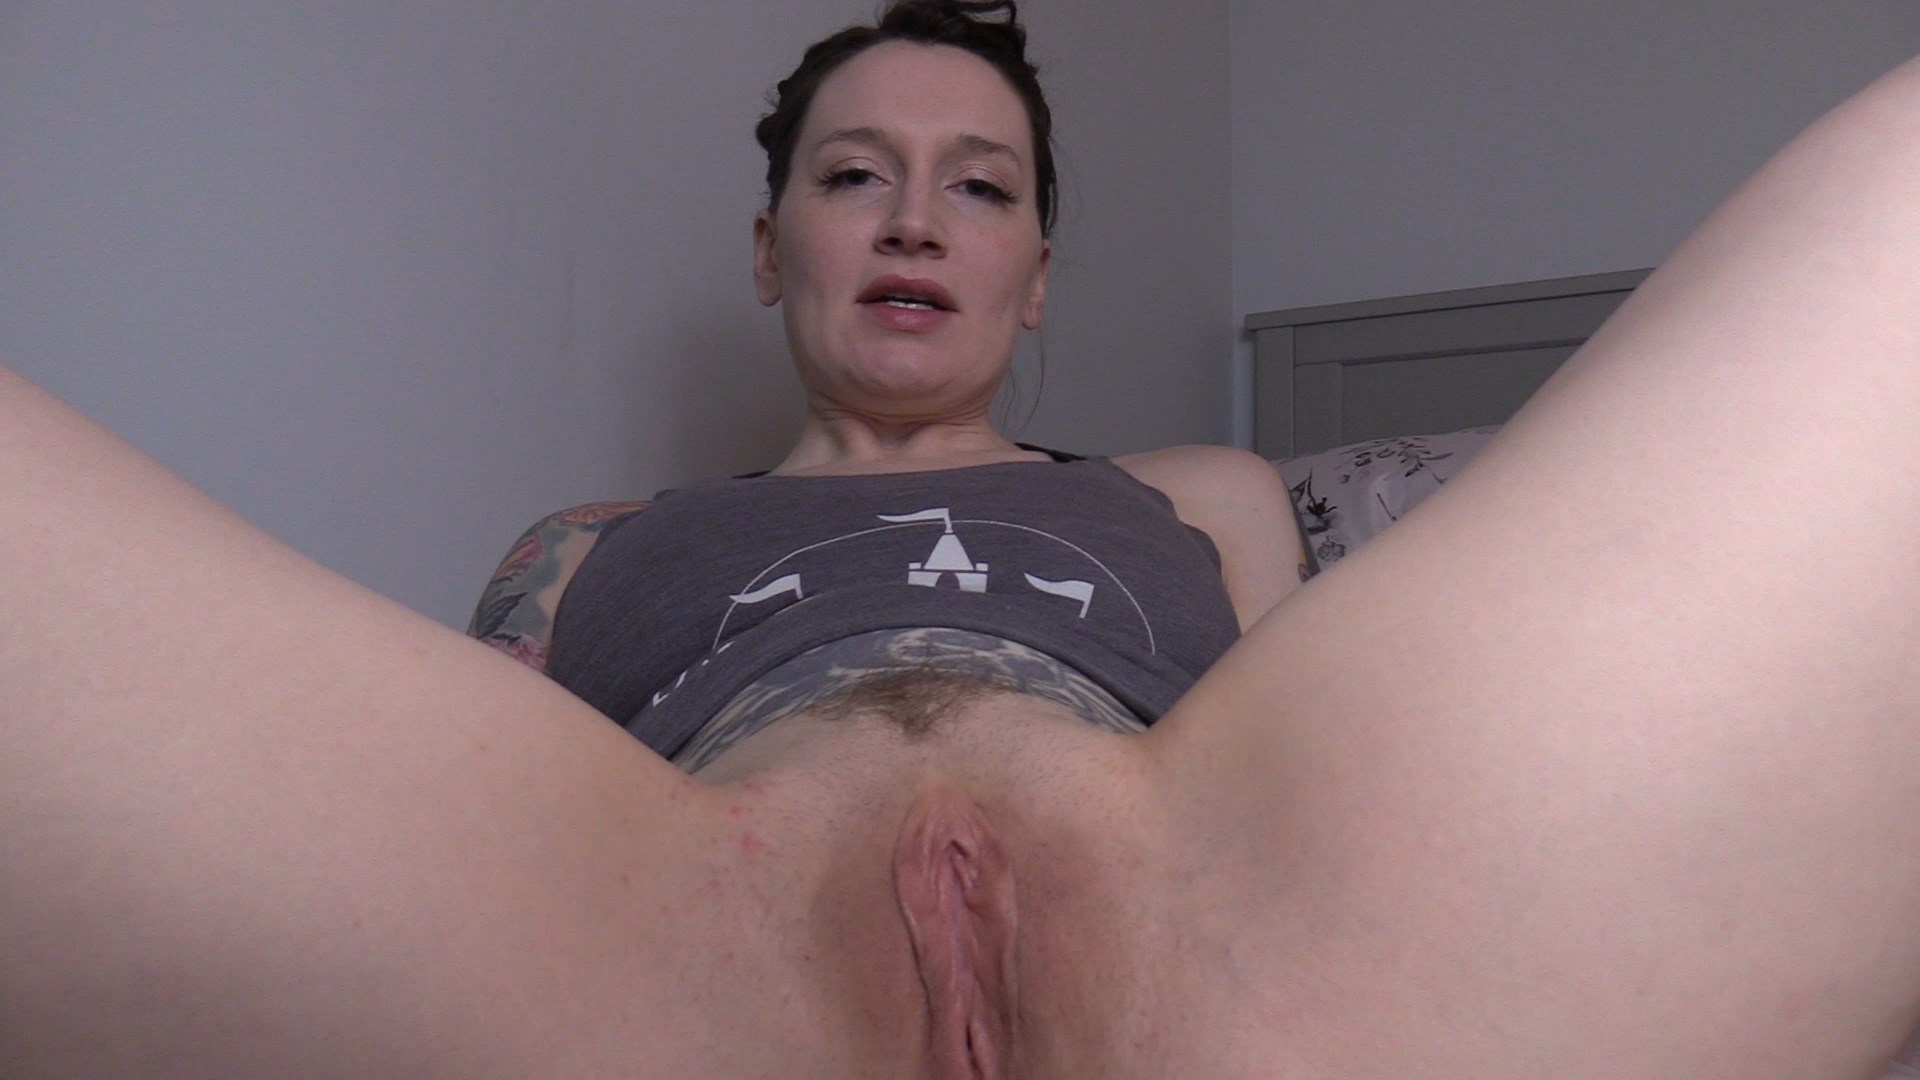 Bettie Bondage - Caught Sniffing Your Sister's Stinky Panties